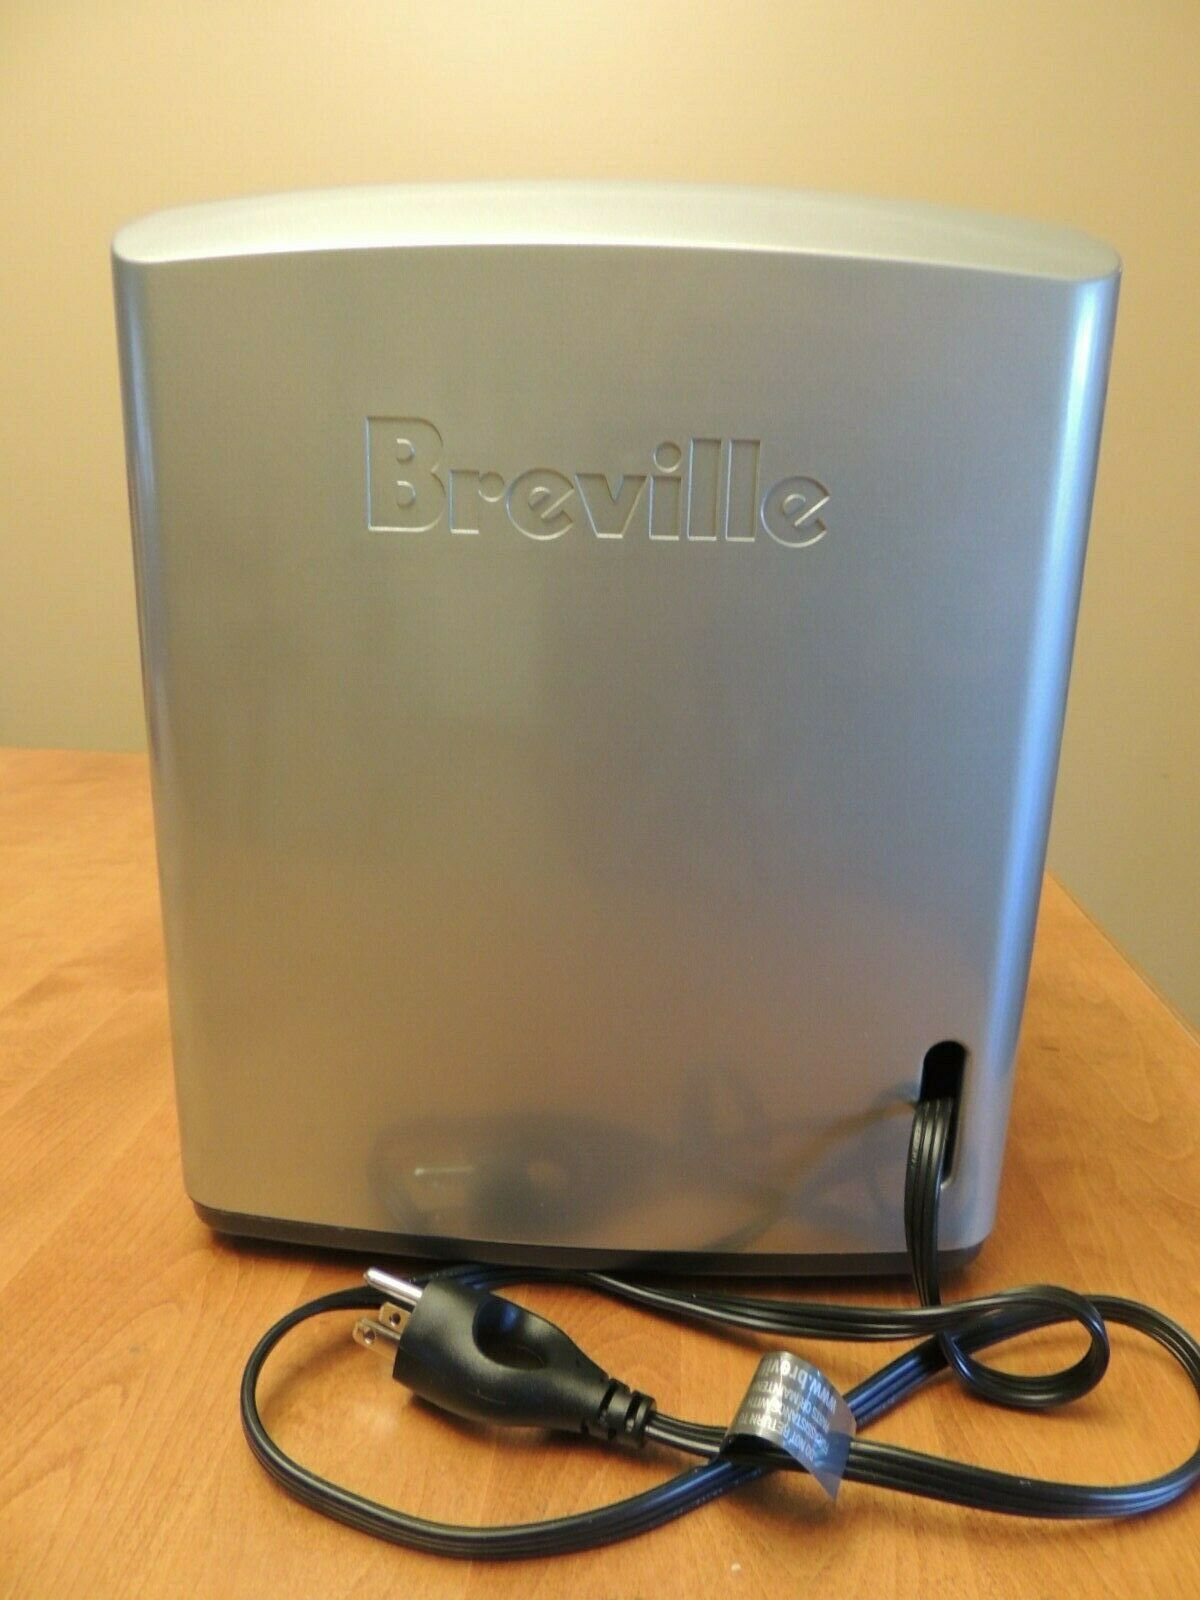 Breville BKC 700 XL Stainless Steel Gourmet Keurig K- Cup Coffee Brewer BKC700XL image 5